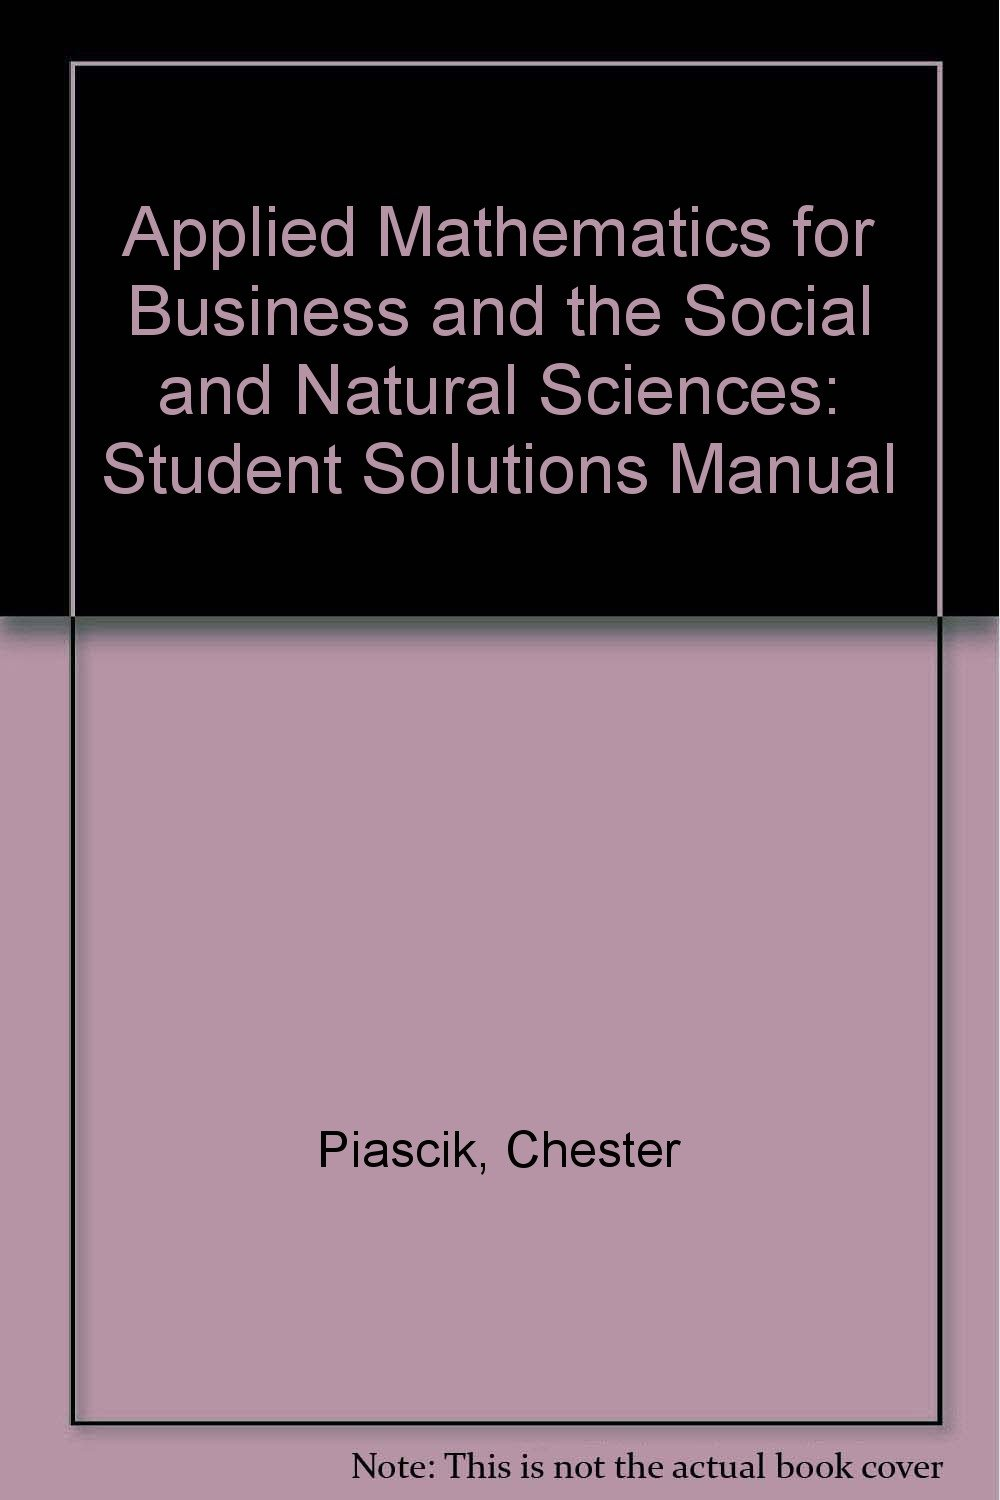 Applied Mathematics for Business and the Social and Natural Sciences: Student  Solutions Manual: Amazon.co.uk: Chester Piascik: 9780314008329: Books